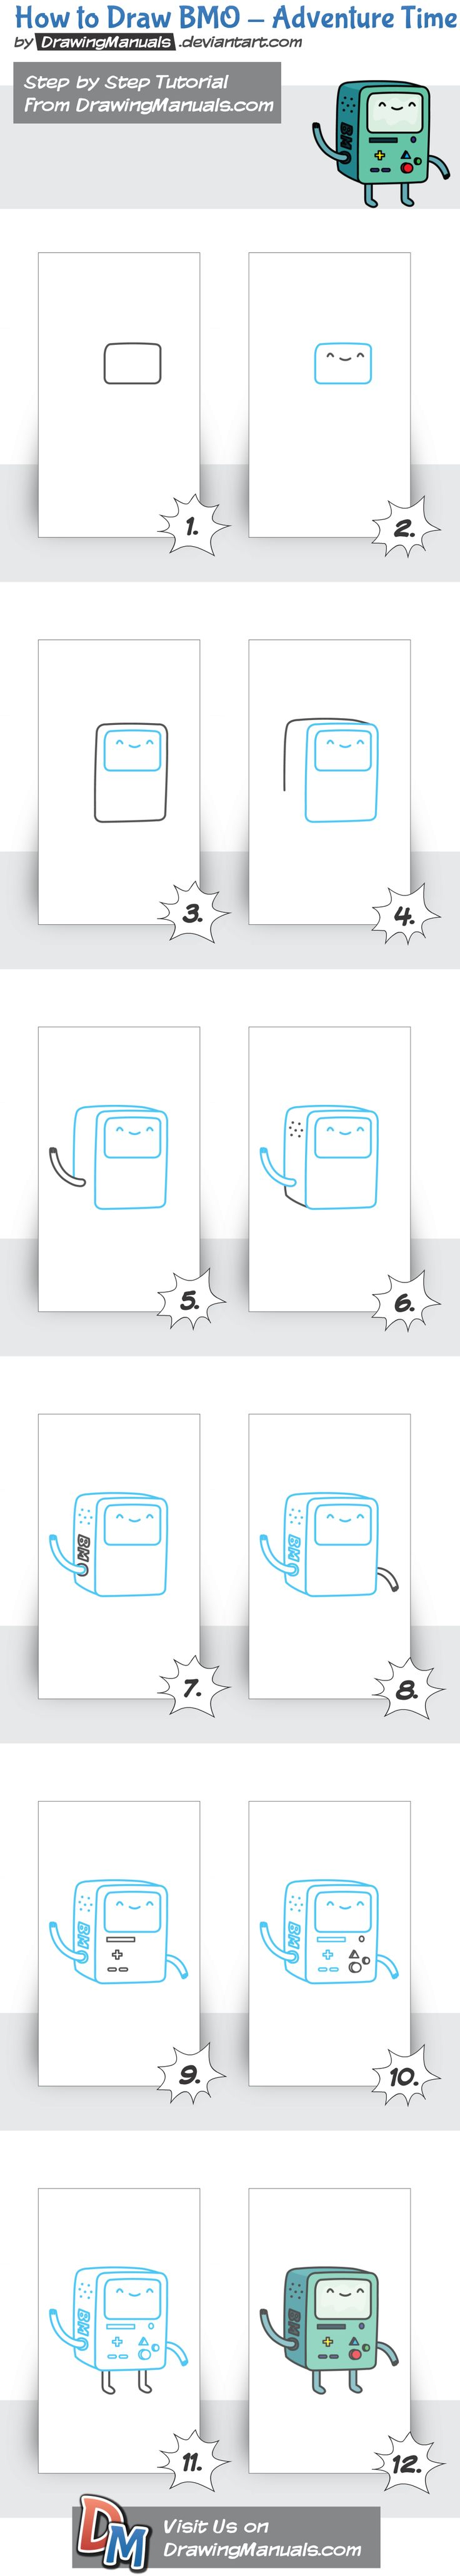 BMO - Adventure Time detailed step by step tutorial